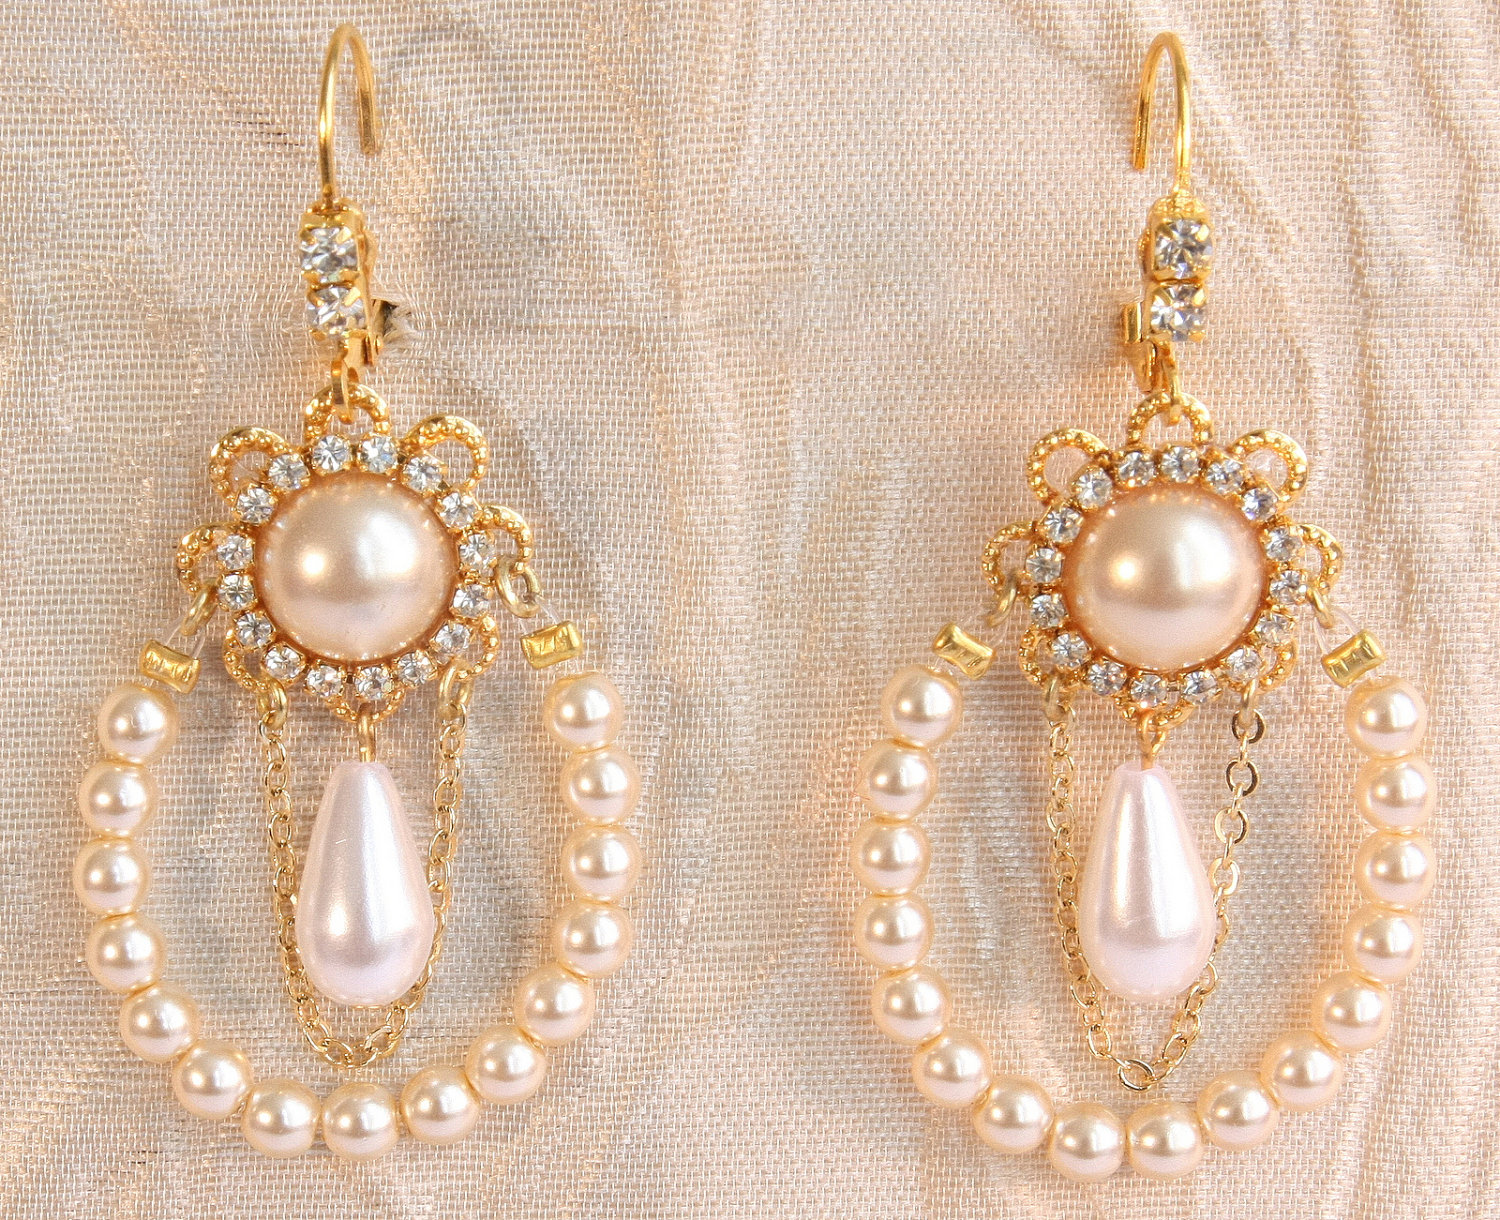 import-Pearl_Chandelier_Bridal_Earrings_One_Row_Of_Ivory_Pearls_Gold_Weddings_Statement_Jewelry_Victorian_Rhinestone_Belle_Collection-aa88a066be62281f45ce2fa54be2bb73